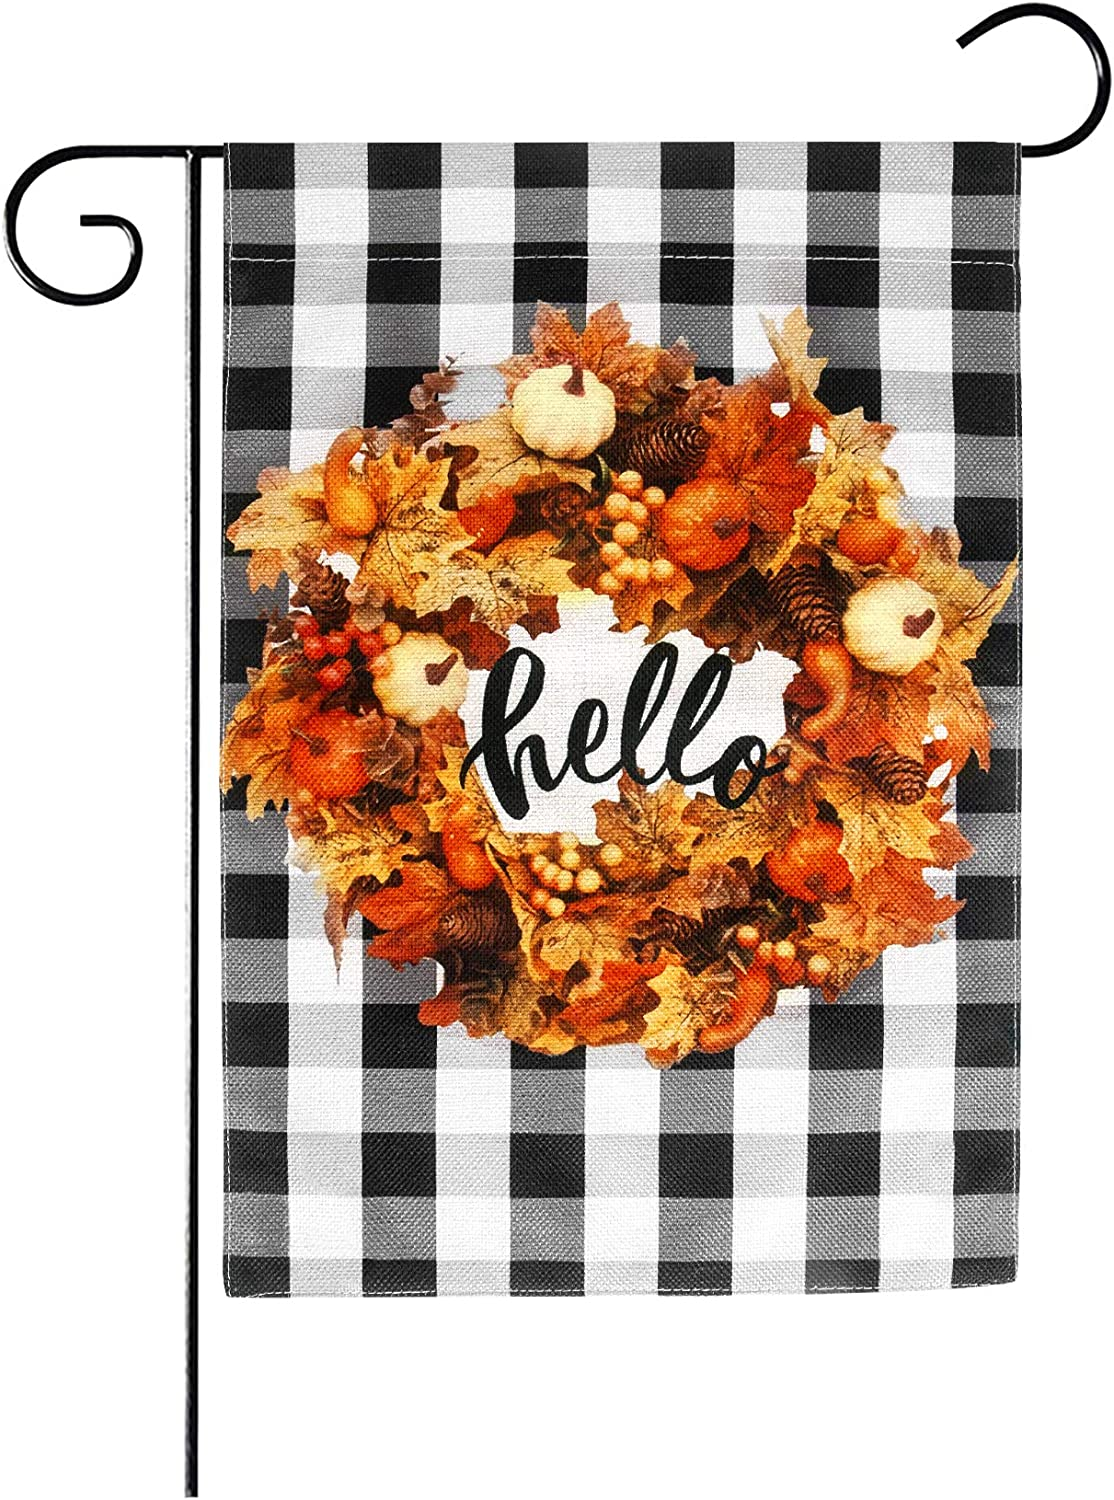 Amandir Fall Garden Flag, Thanksgiving Outdoor Decor 12 x 18 Double Sided Burlap Fall Leaves Wreath Welcome Yard Flag, Buffalo Plaid Fall Decor Outside Farmhouse Front Porch Decorations